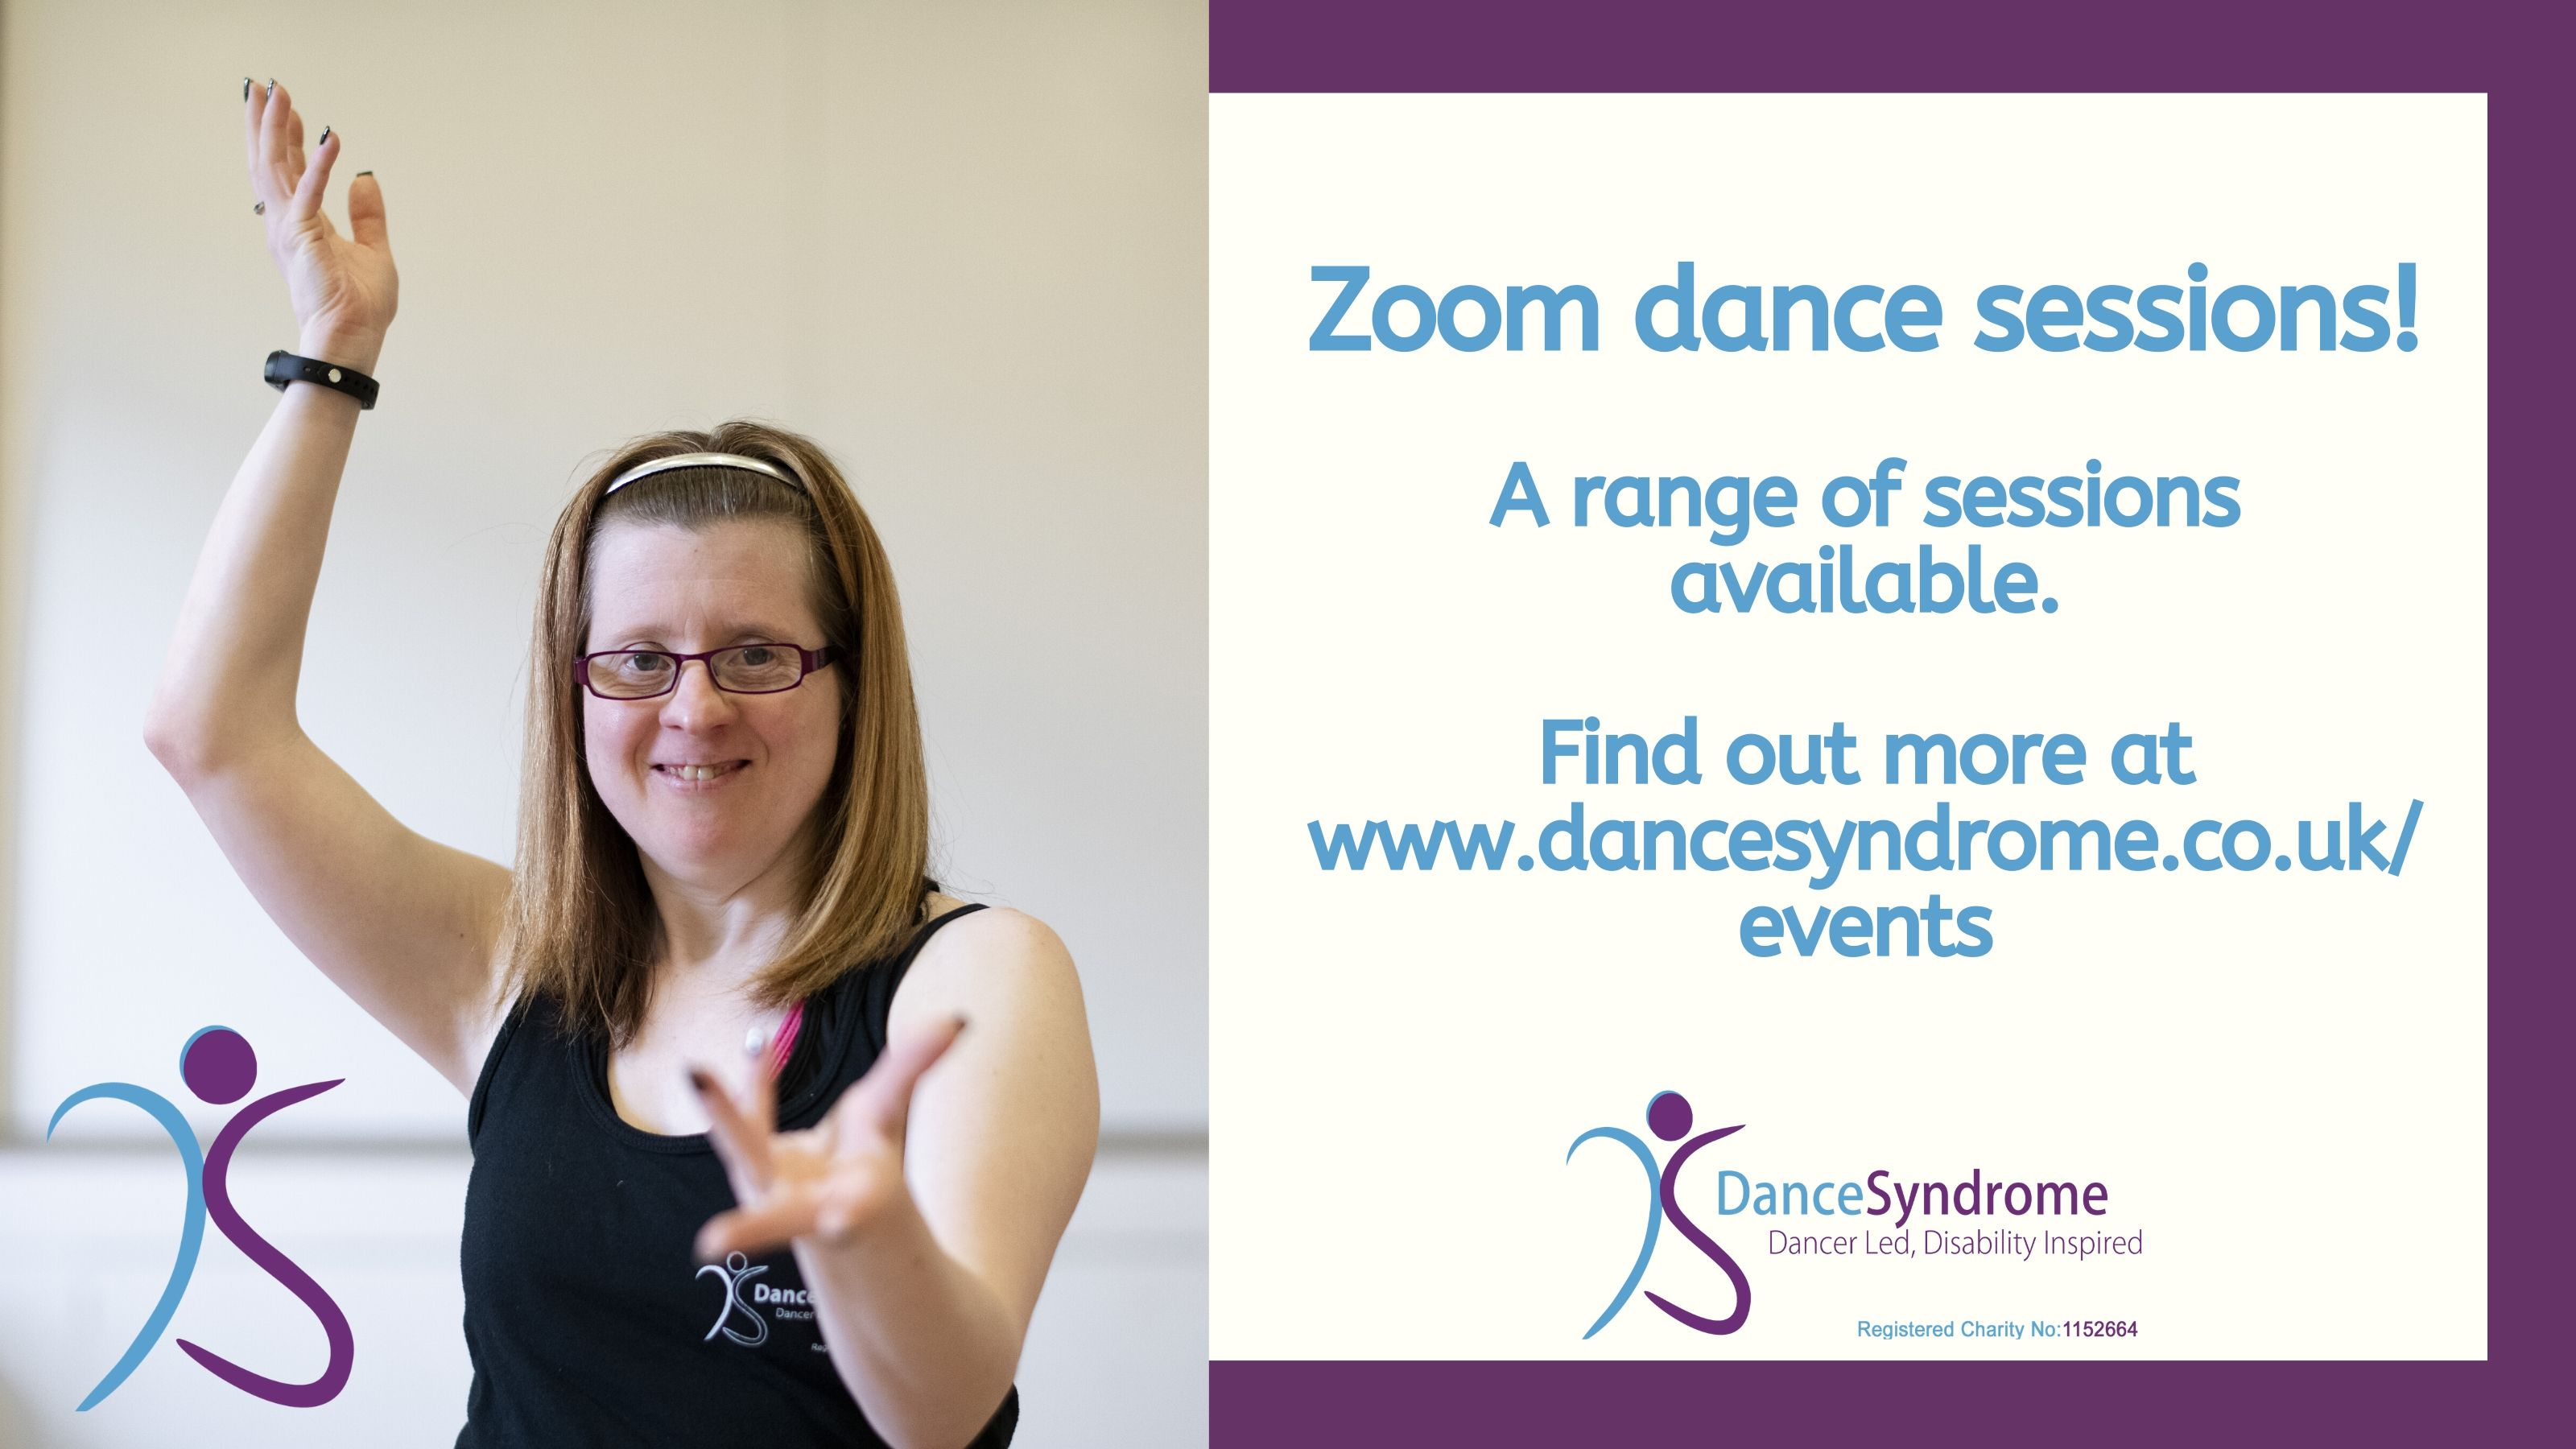 DanceSyndrome are offering live Zoom sessions